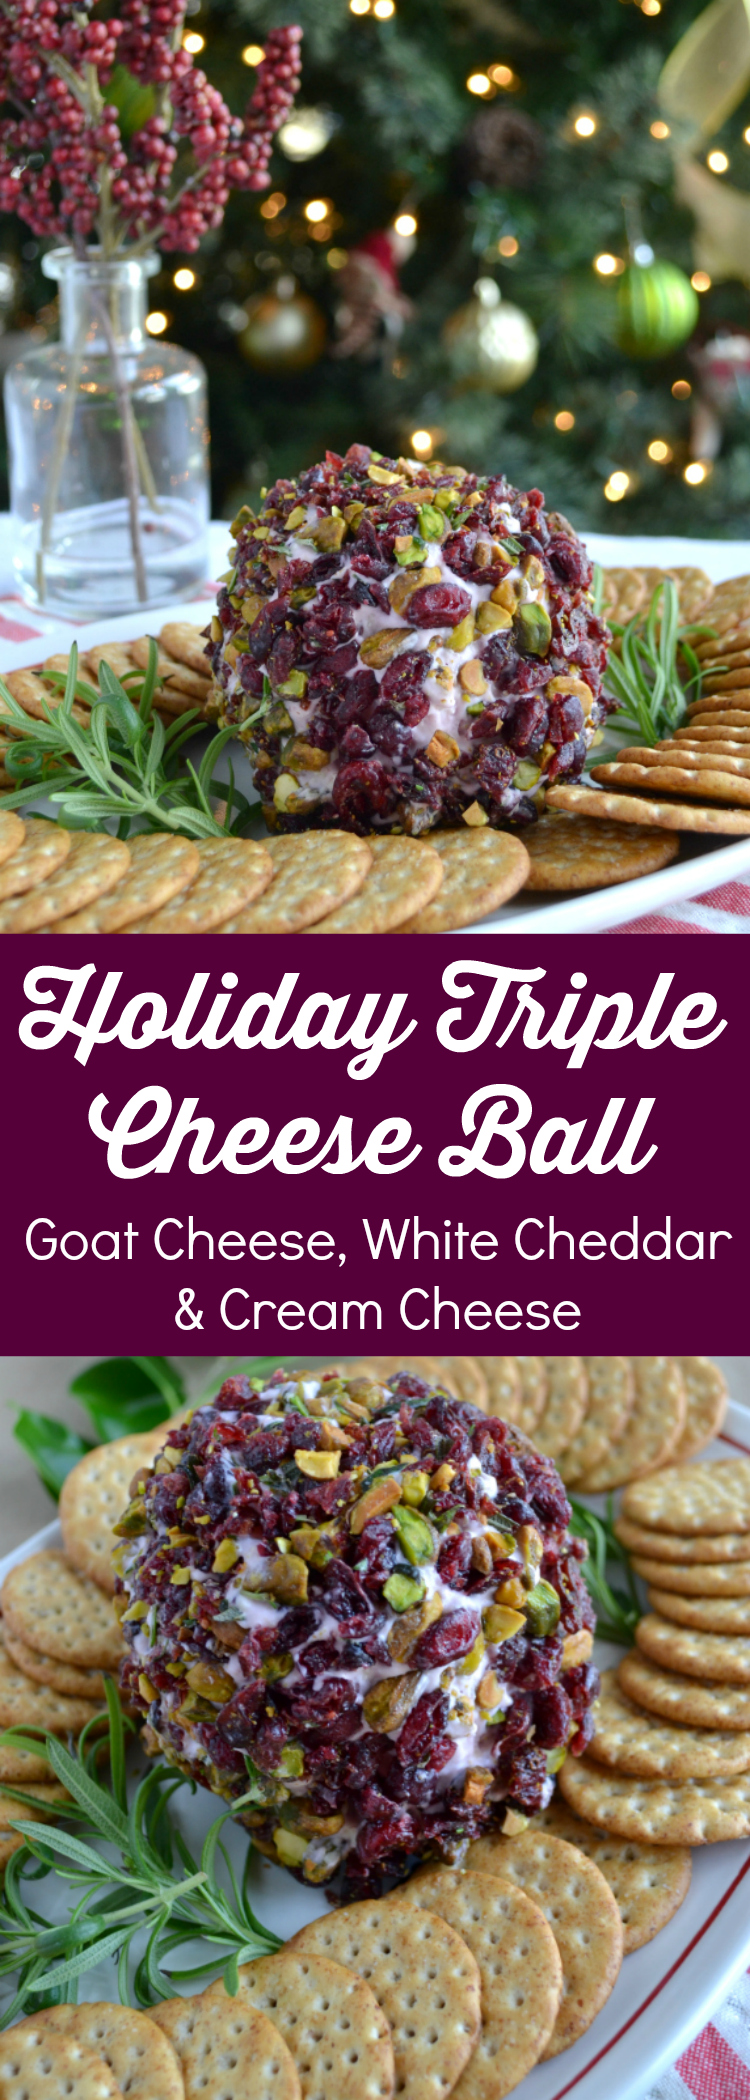 This Holiday Cheese Ball with cranberries is the perfect holiday party appetizer! Goat cheese, cream cheese, aged cheddar and cranberries create the perfect balance of tangy and sweet.